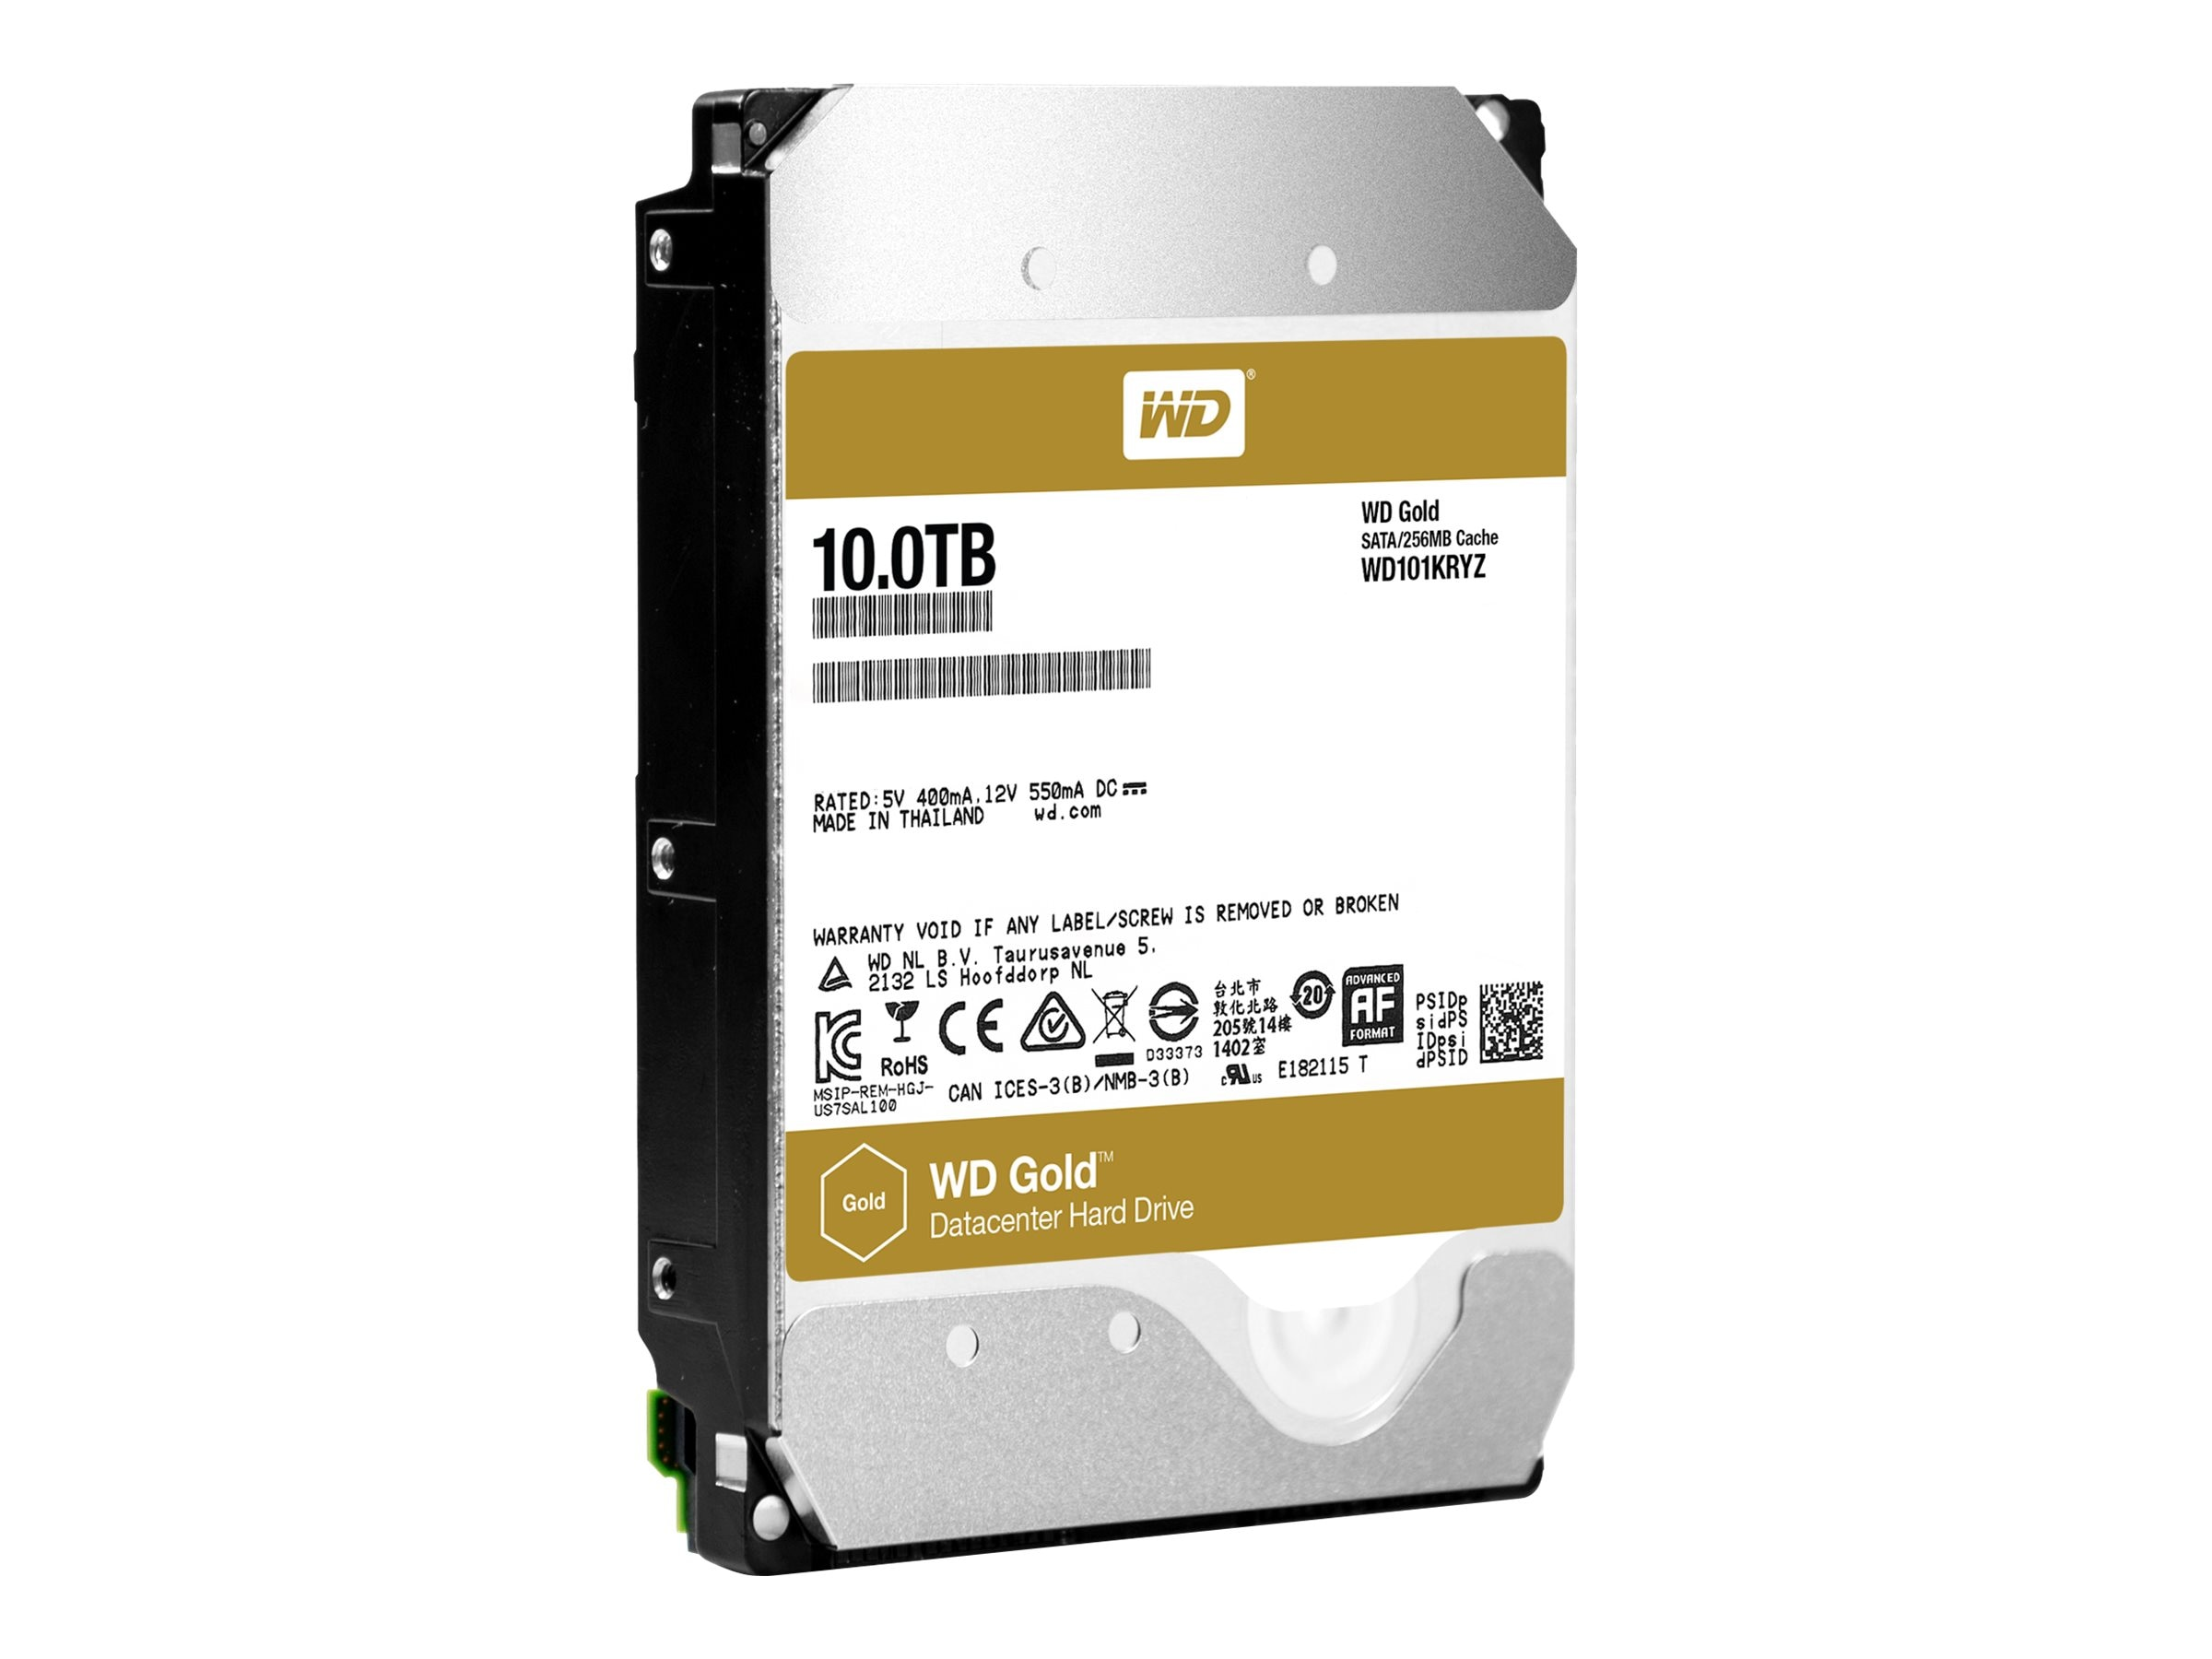 WD 10TB WD Gold SATA 6Gb s 3.5 Datacenter Hard Drive